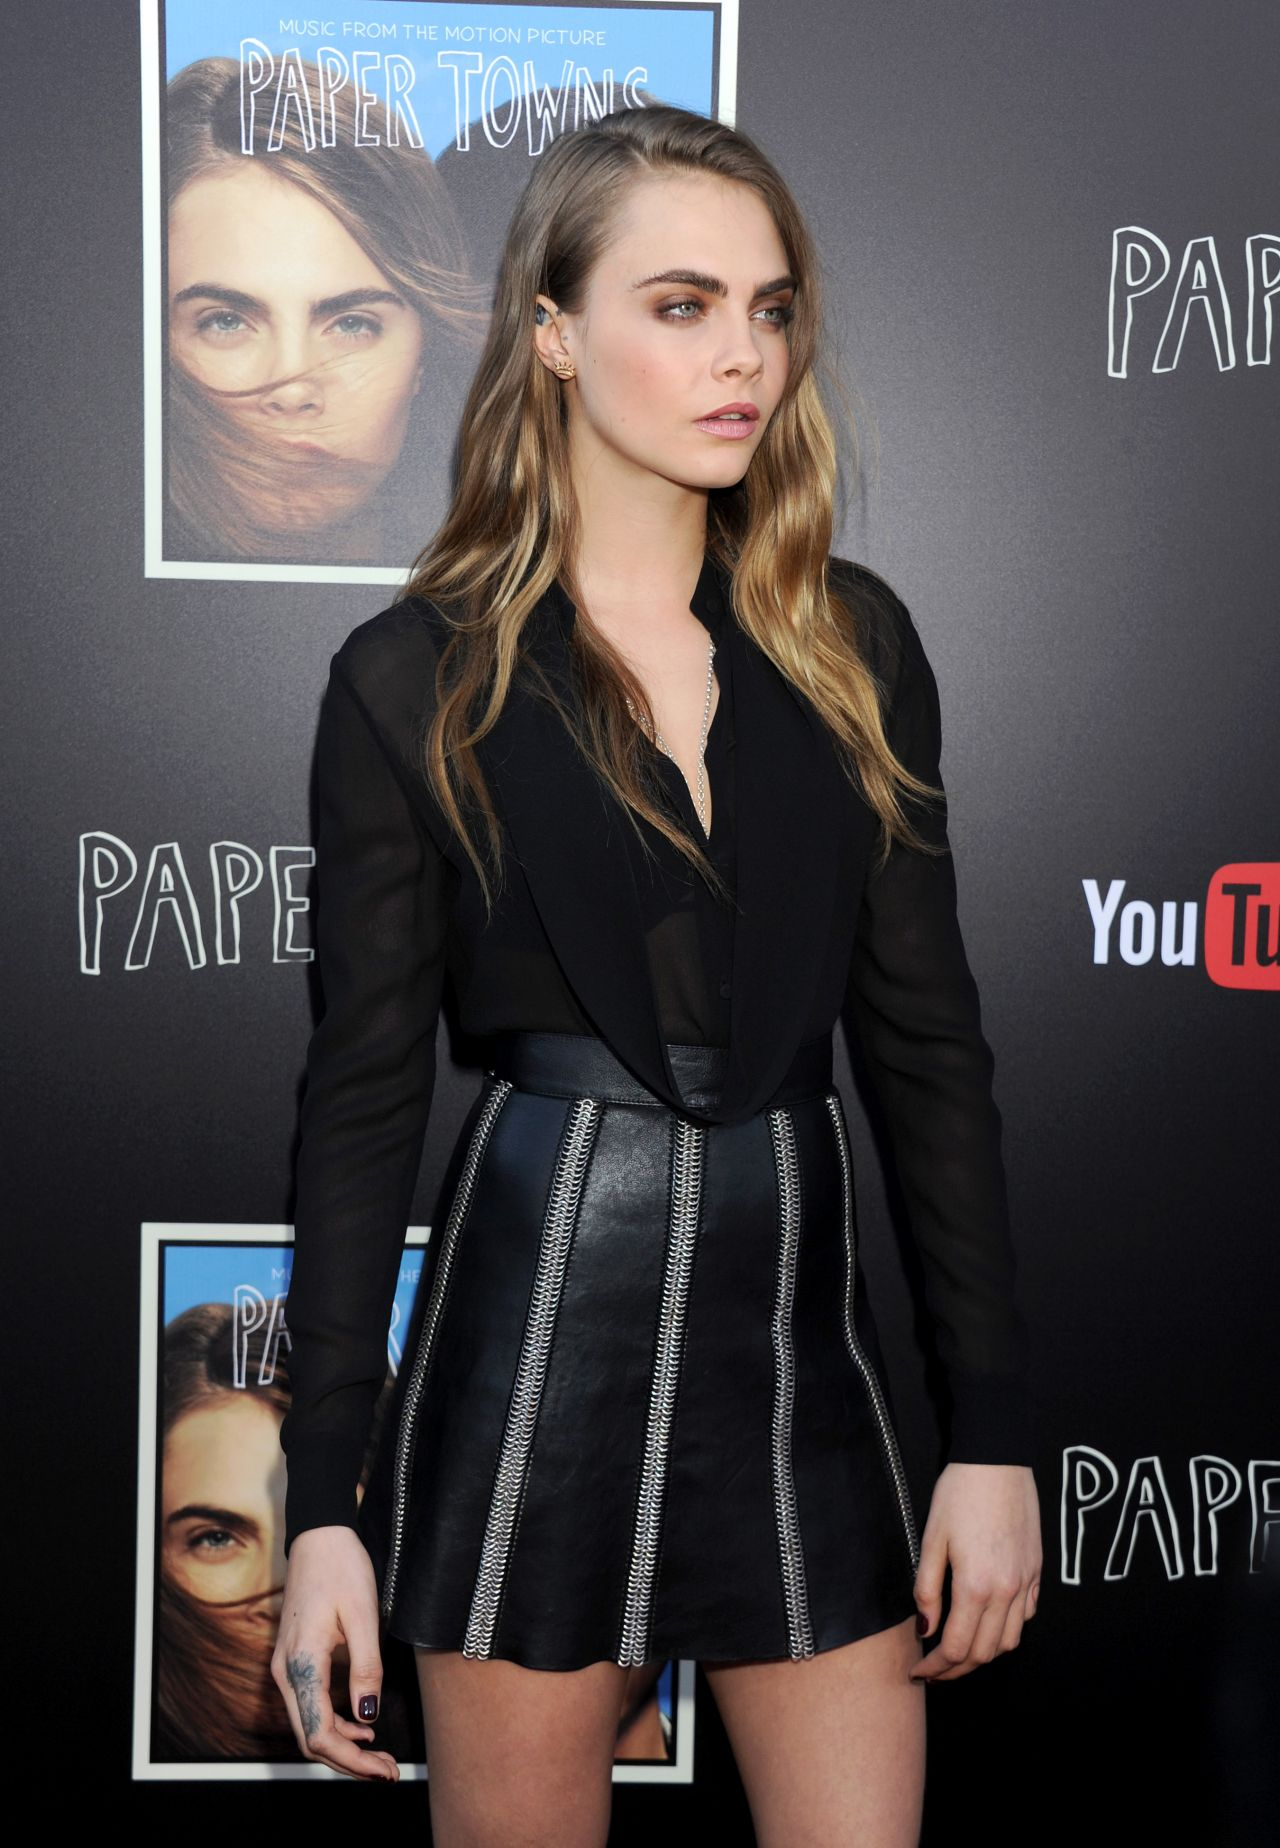 cara-delevingne-paper-towns-q-a-and-concert-in-los-angeles_7